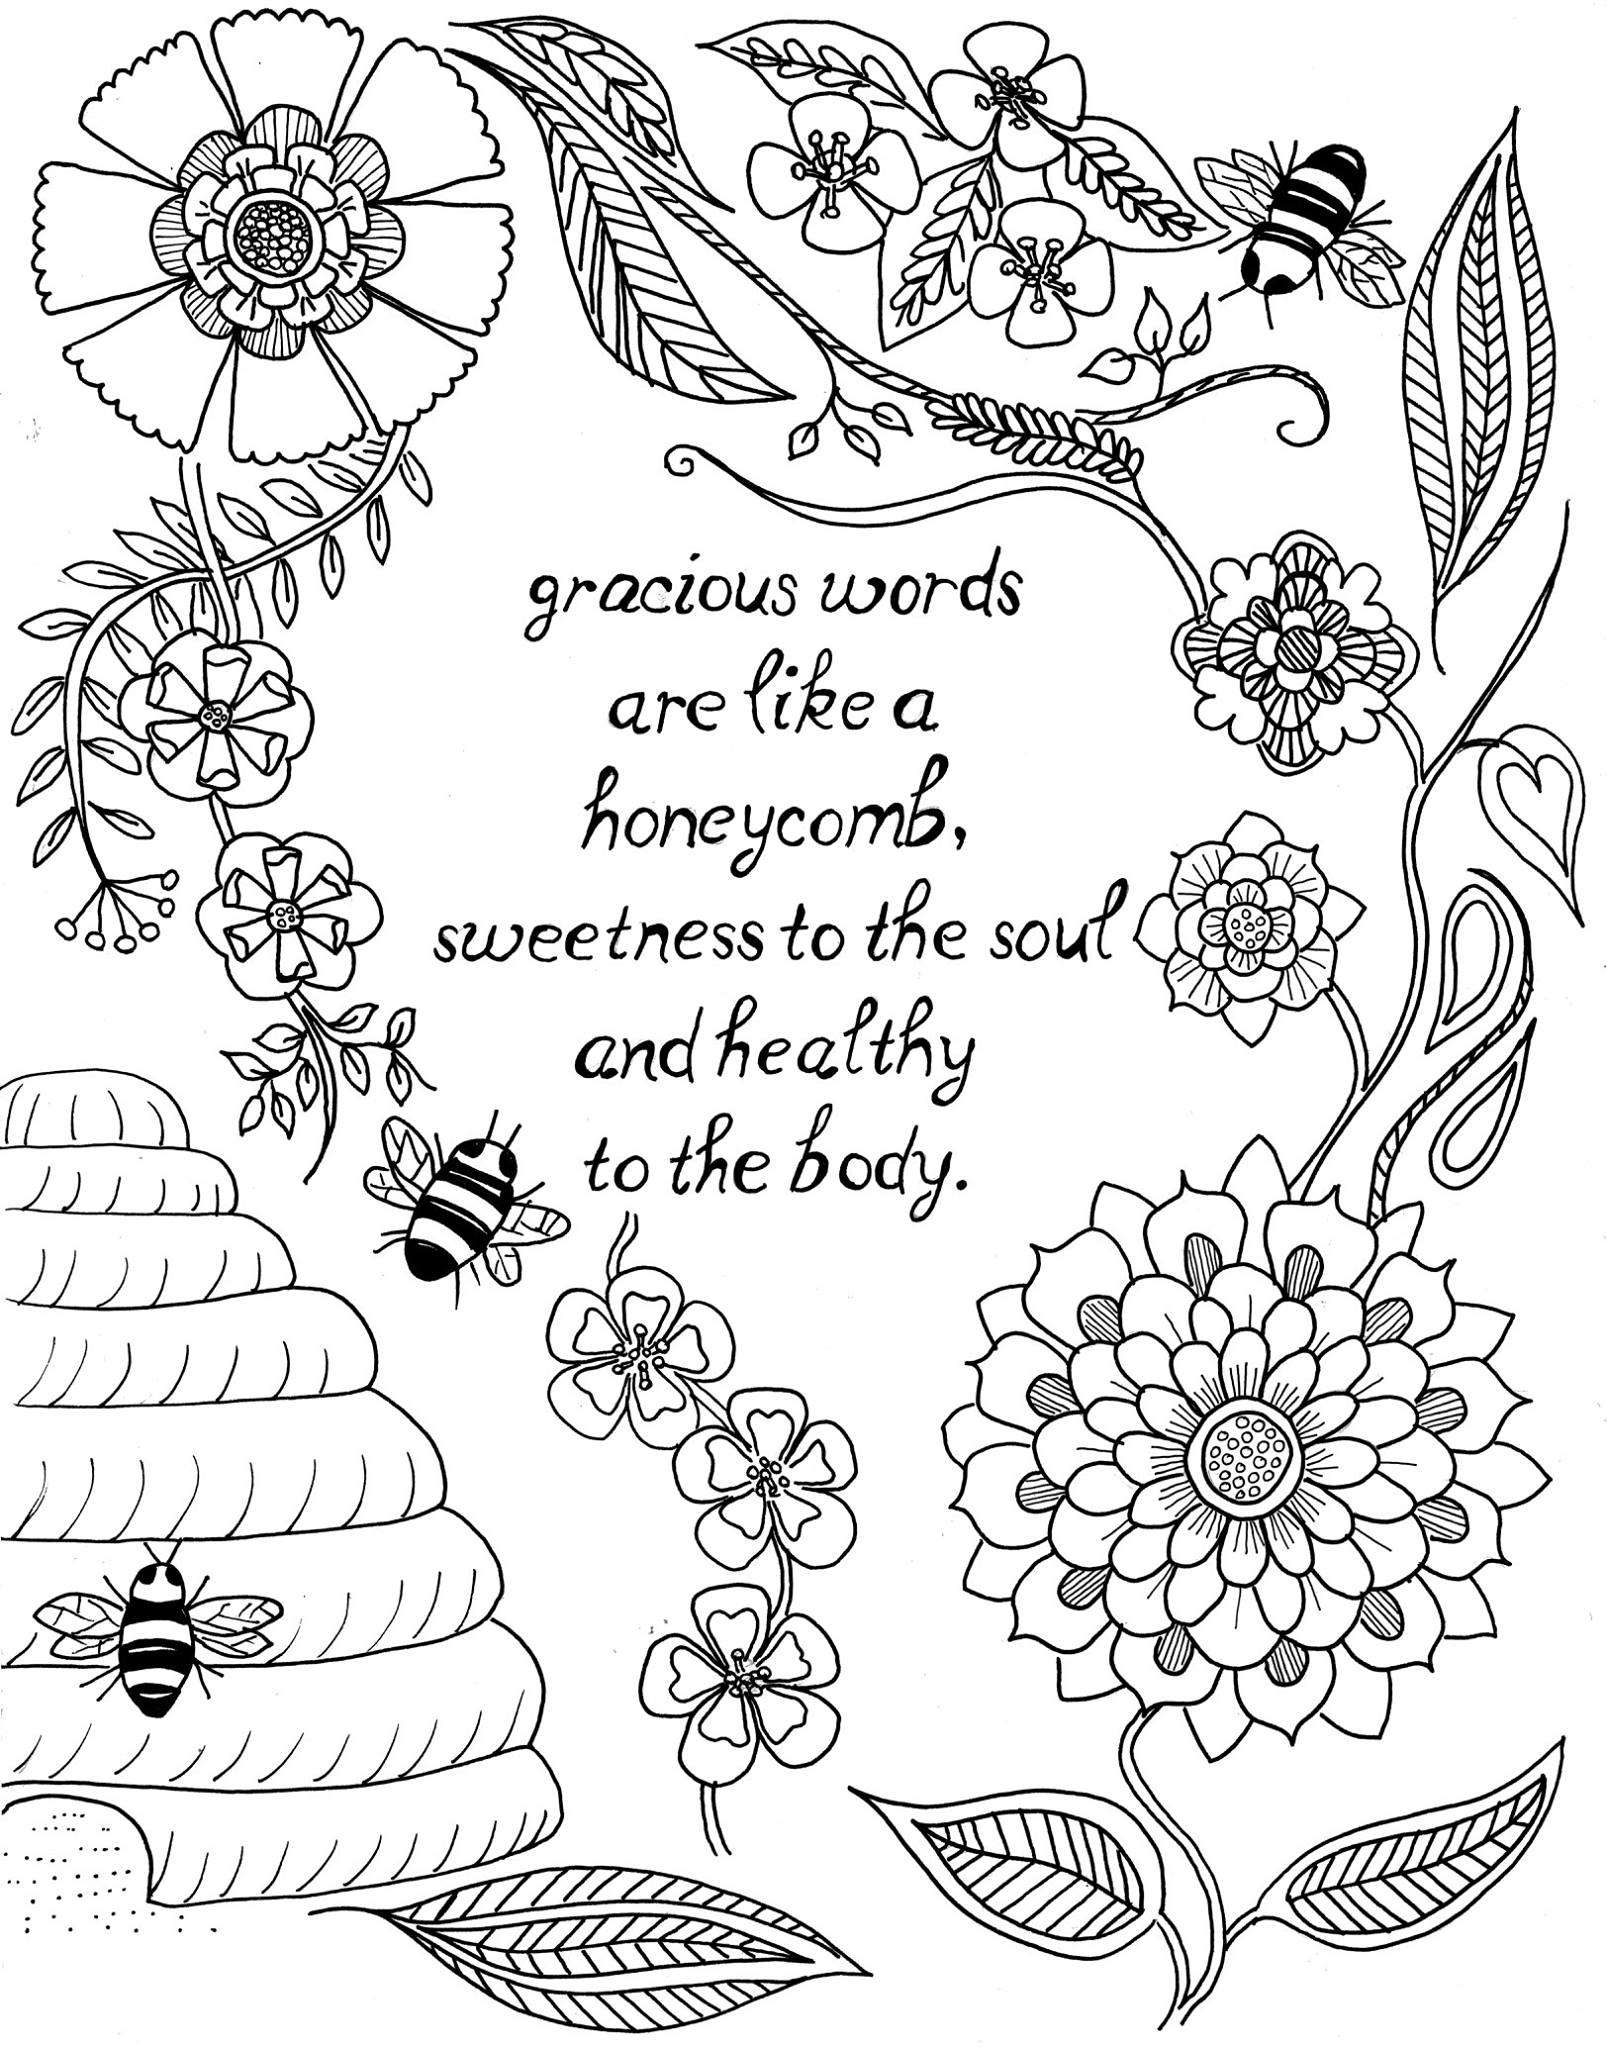 Christmas Coloring Pages With Scripture For Adults Pdf